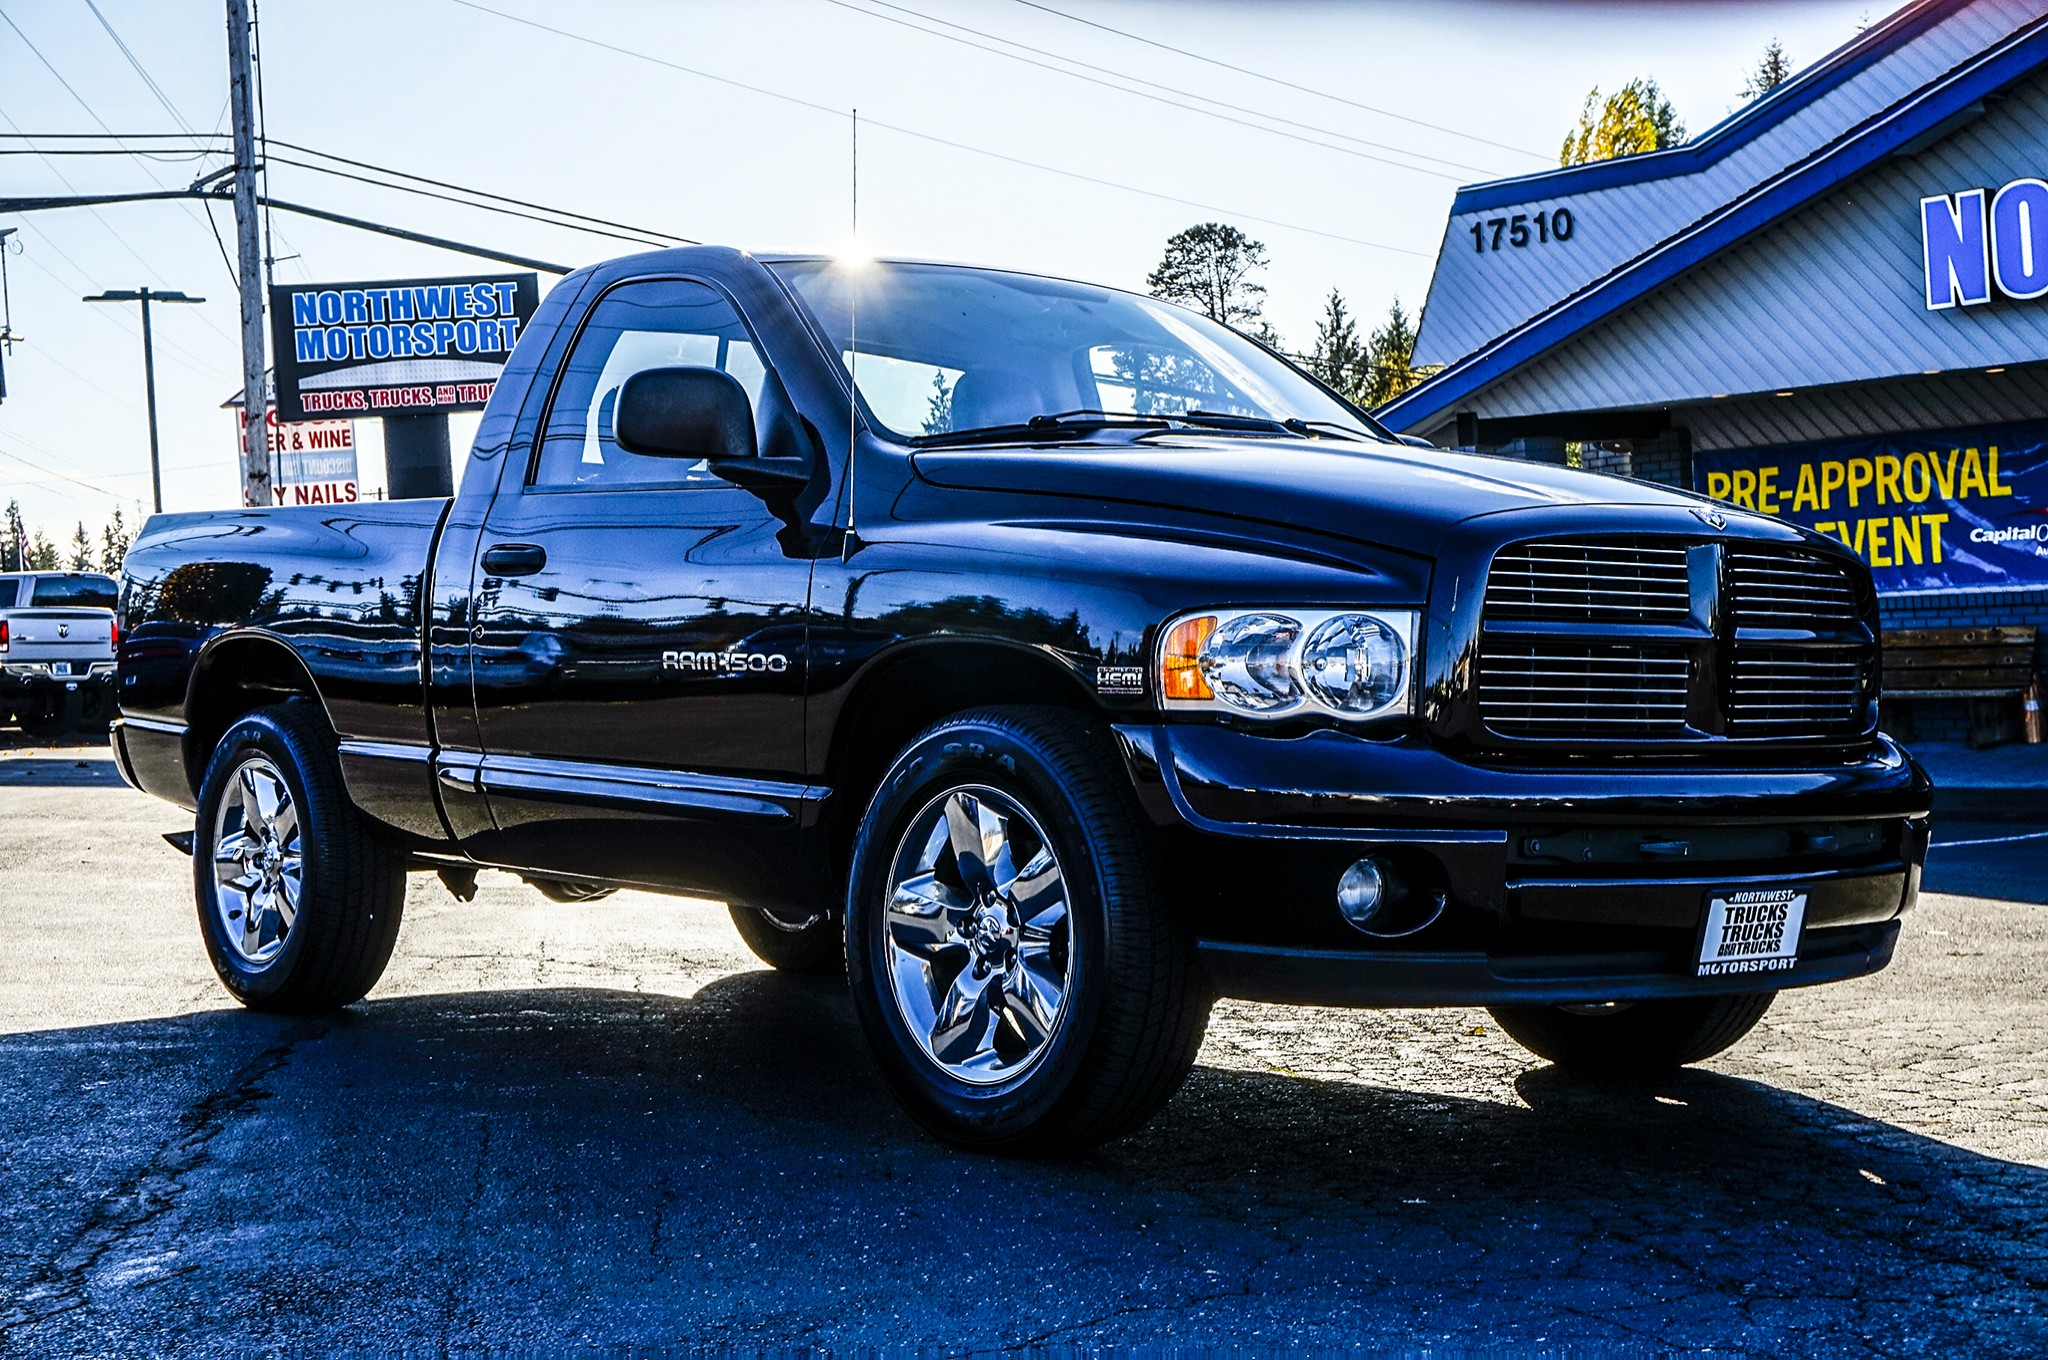 Used 2004 Dodge Ram 1500 Laramie Rwd Truck For Sale 33407a